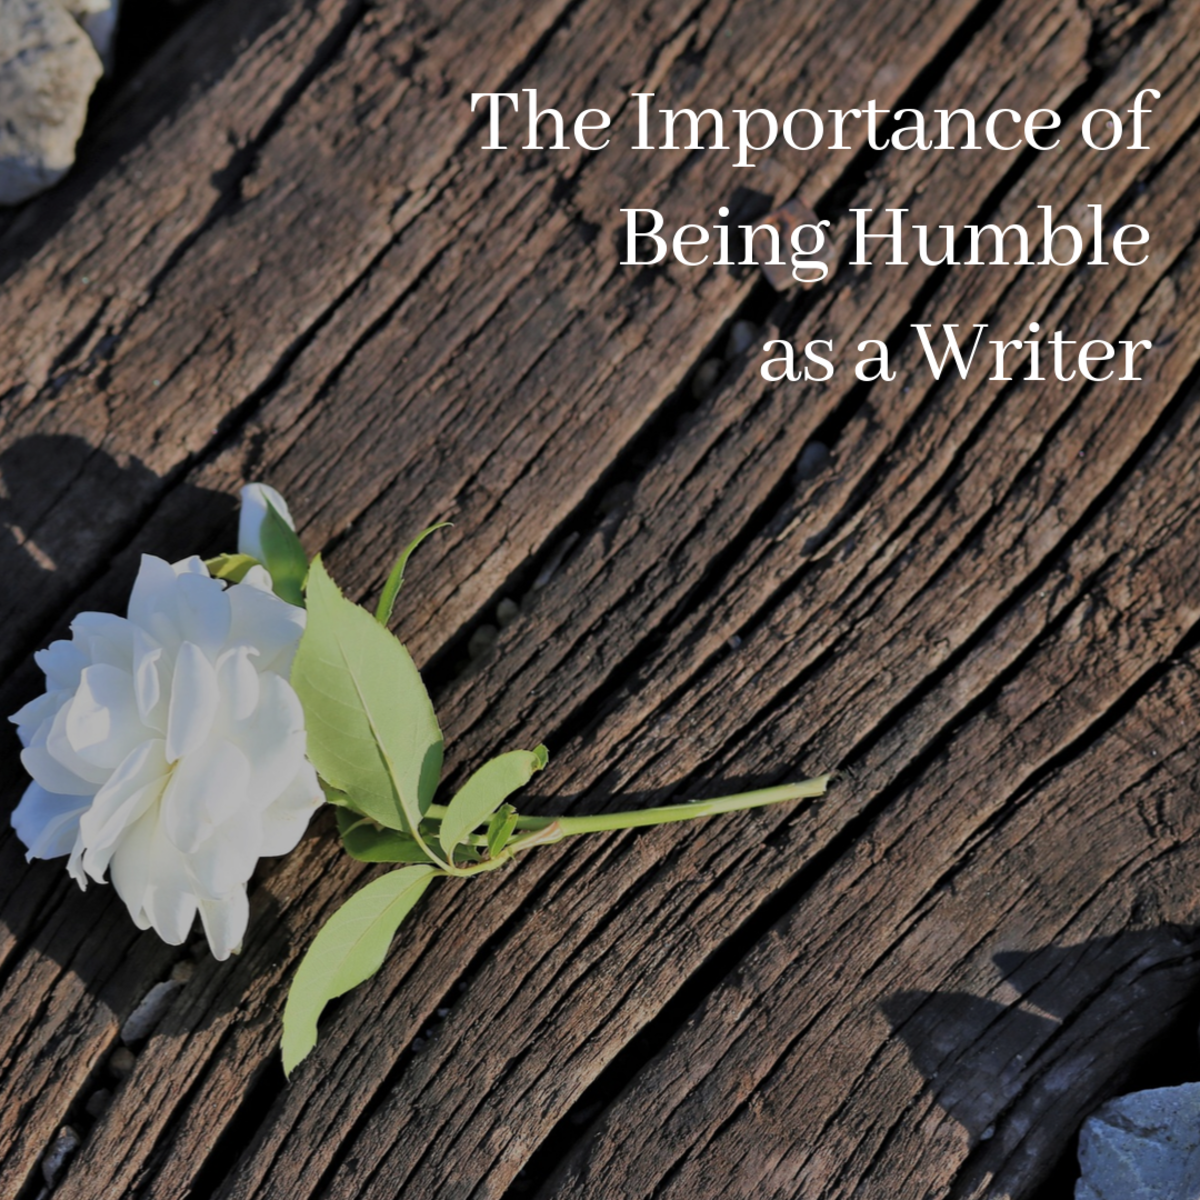 Humility Is Needed as a Writer